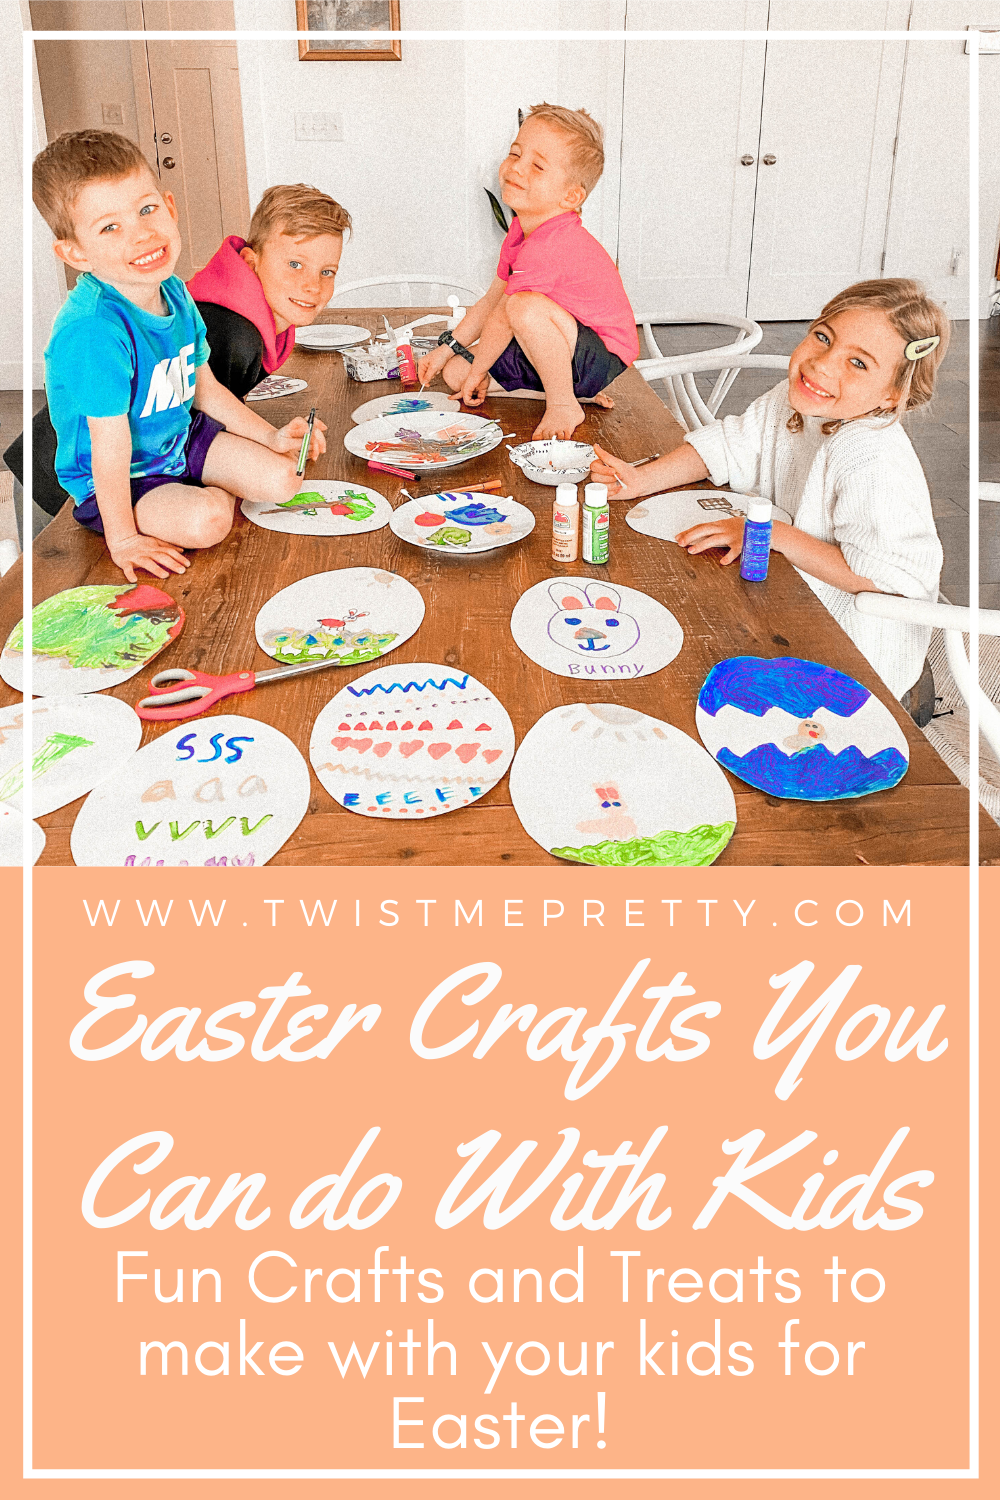 Easter Crafts You Can Do With Your Kids www.TwistMePretty.com